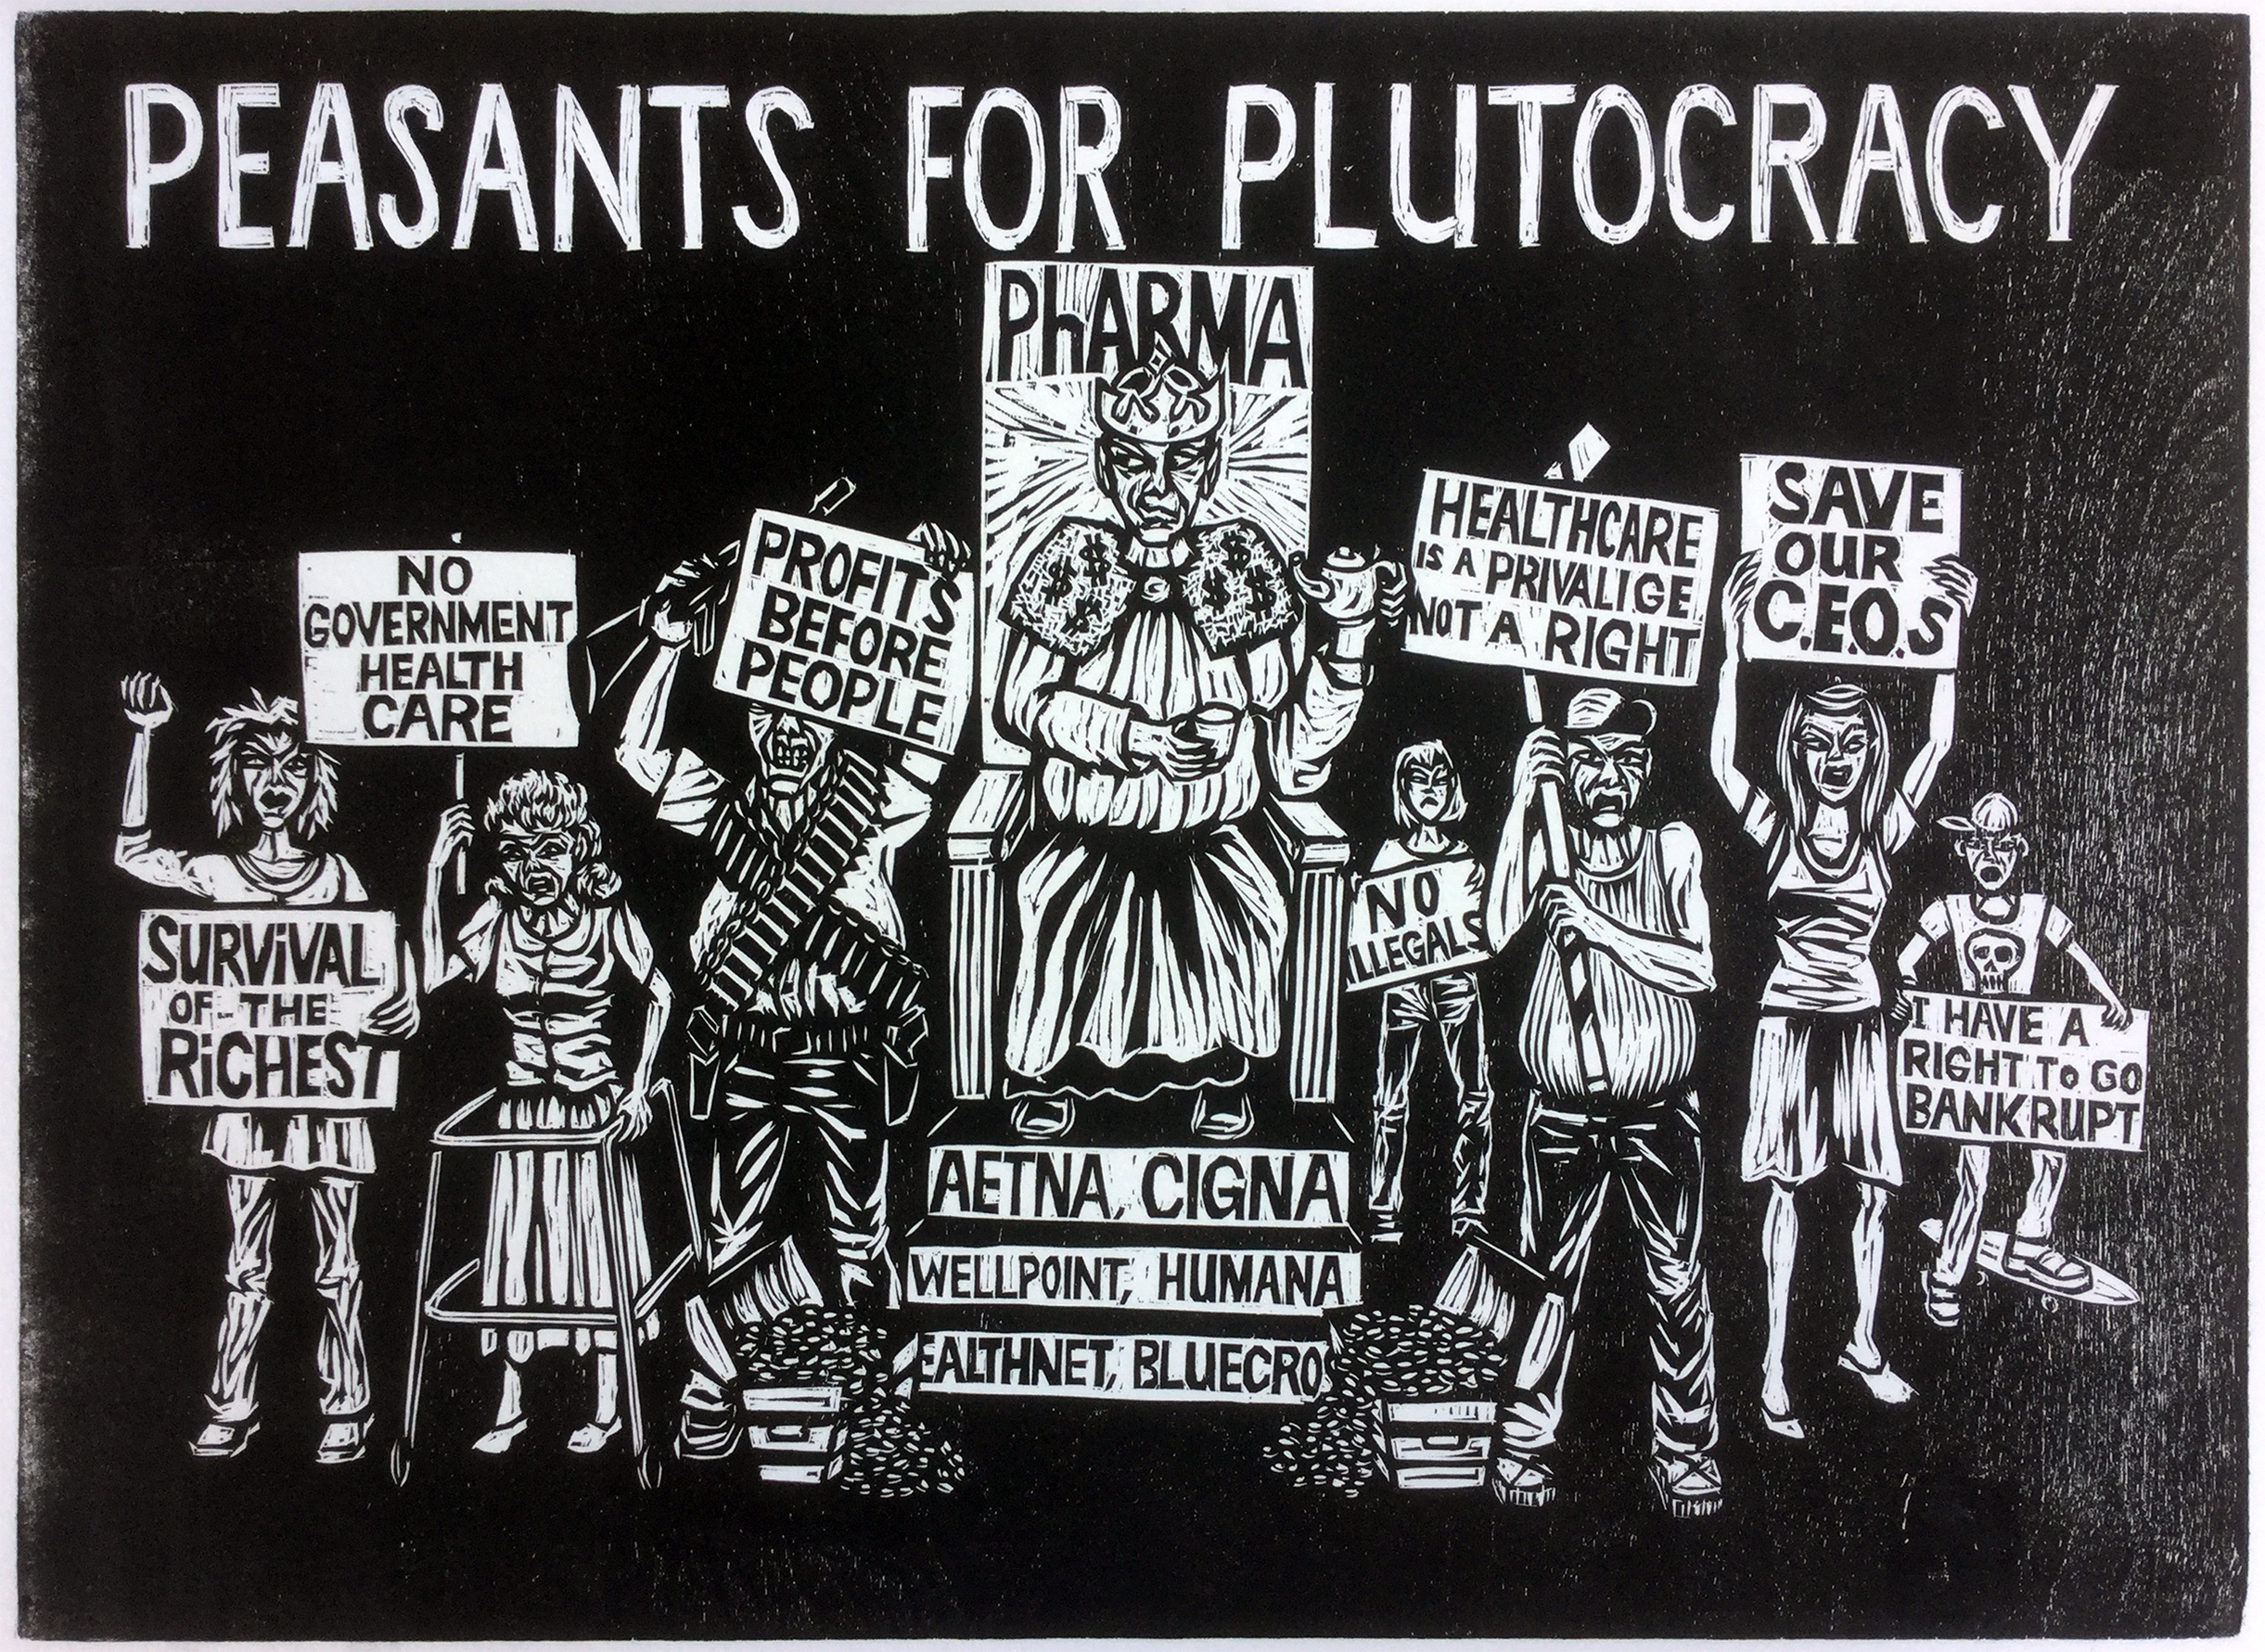 1 Peasants For Plutocracy 2009 woodcut print, 12 x 17.75in